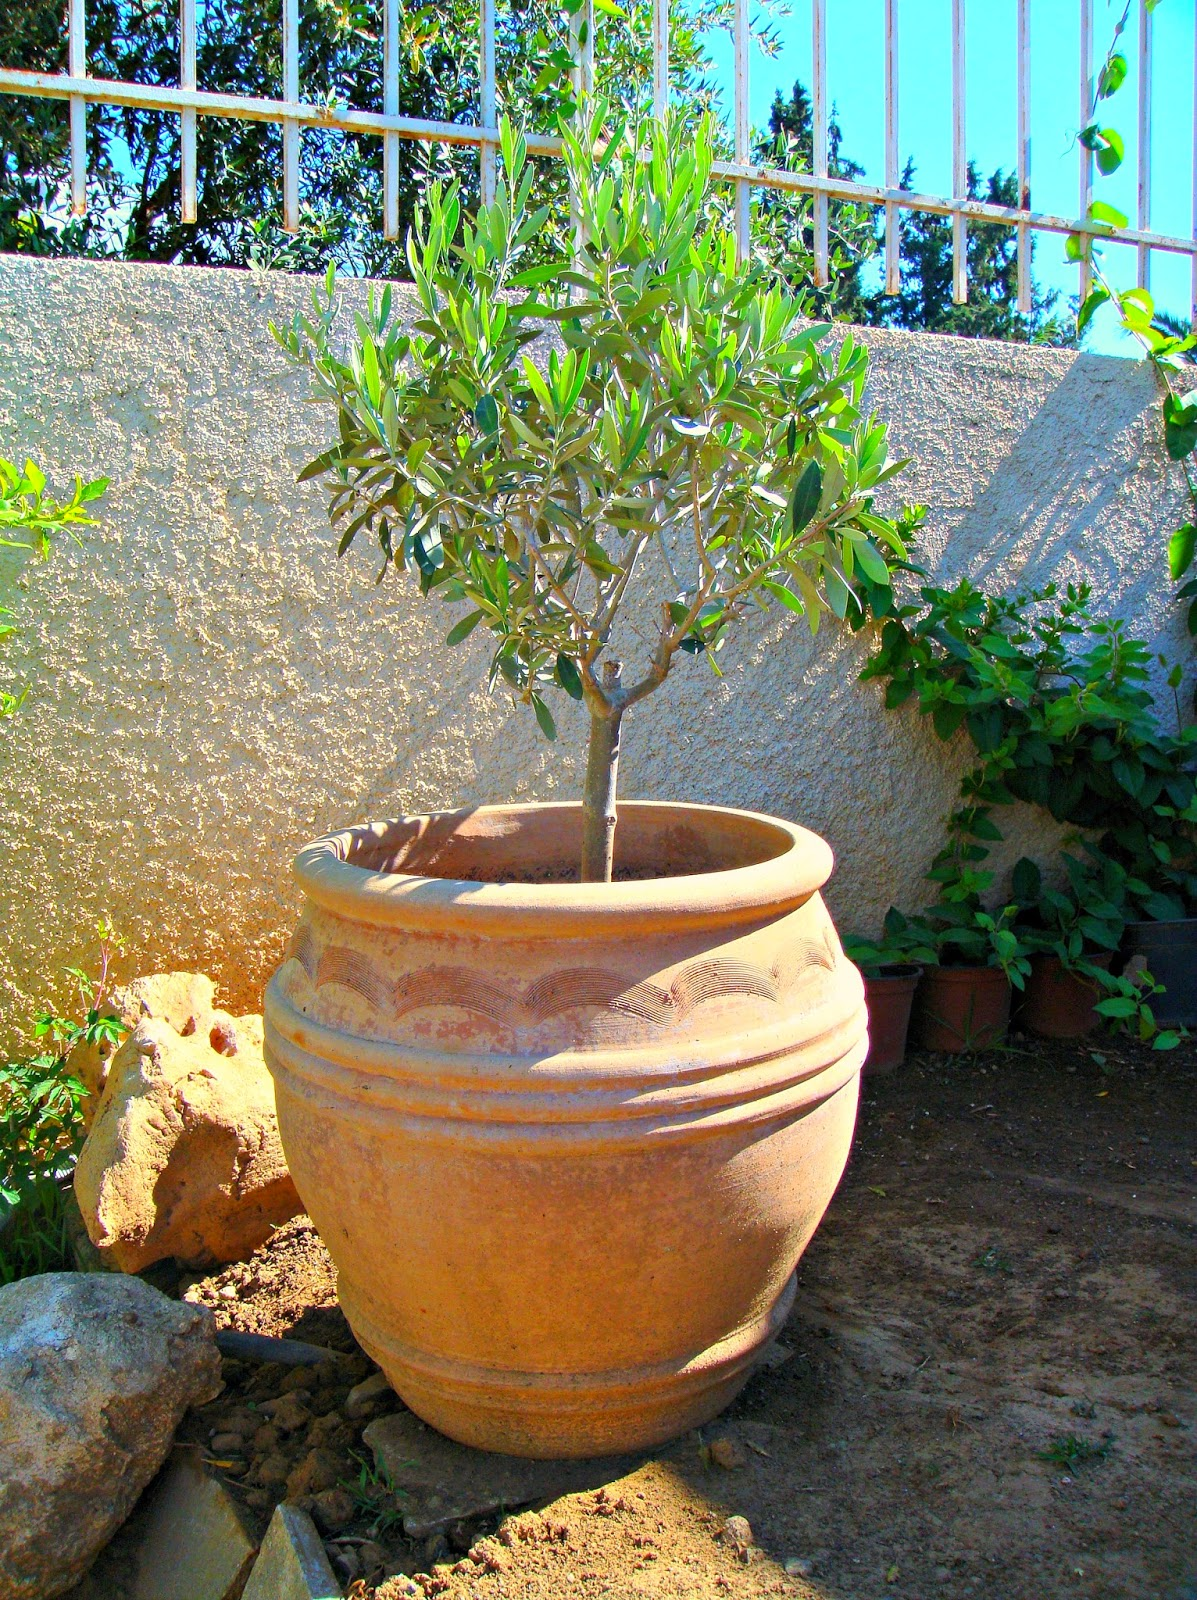 Greeker than the greeks good morning greece for Pruning olive trees in pots